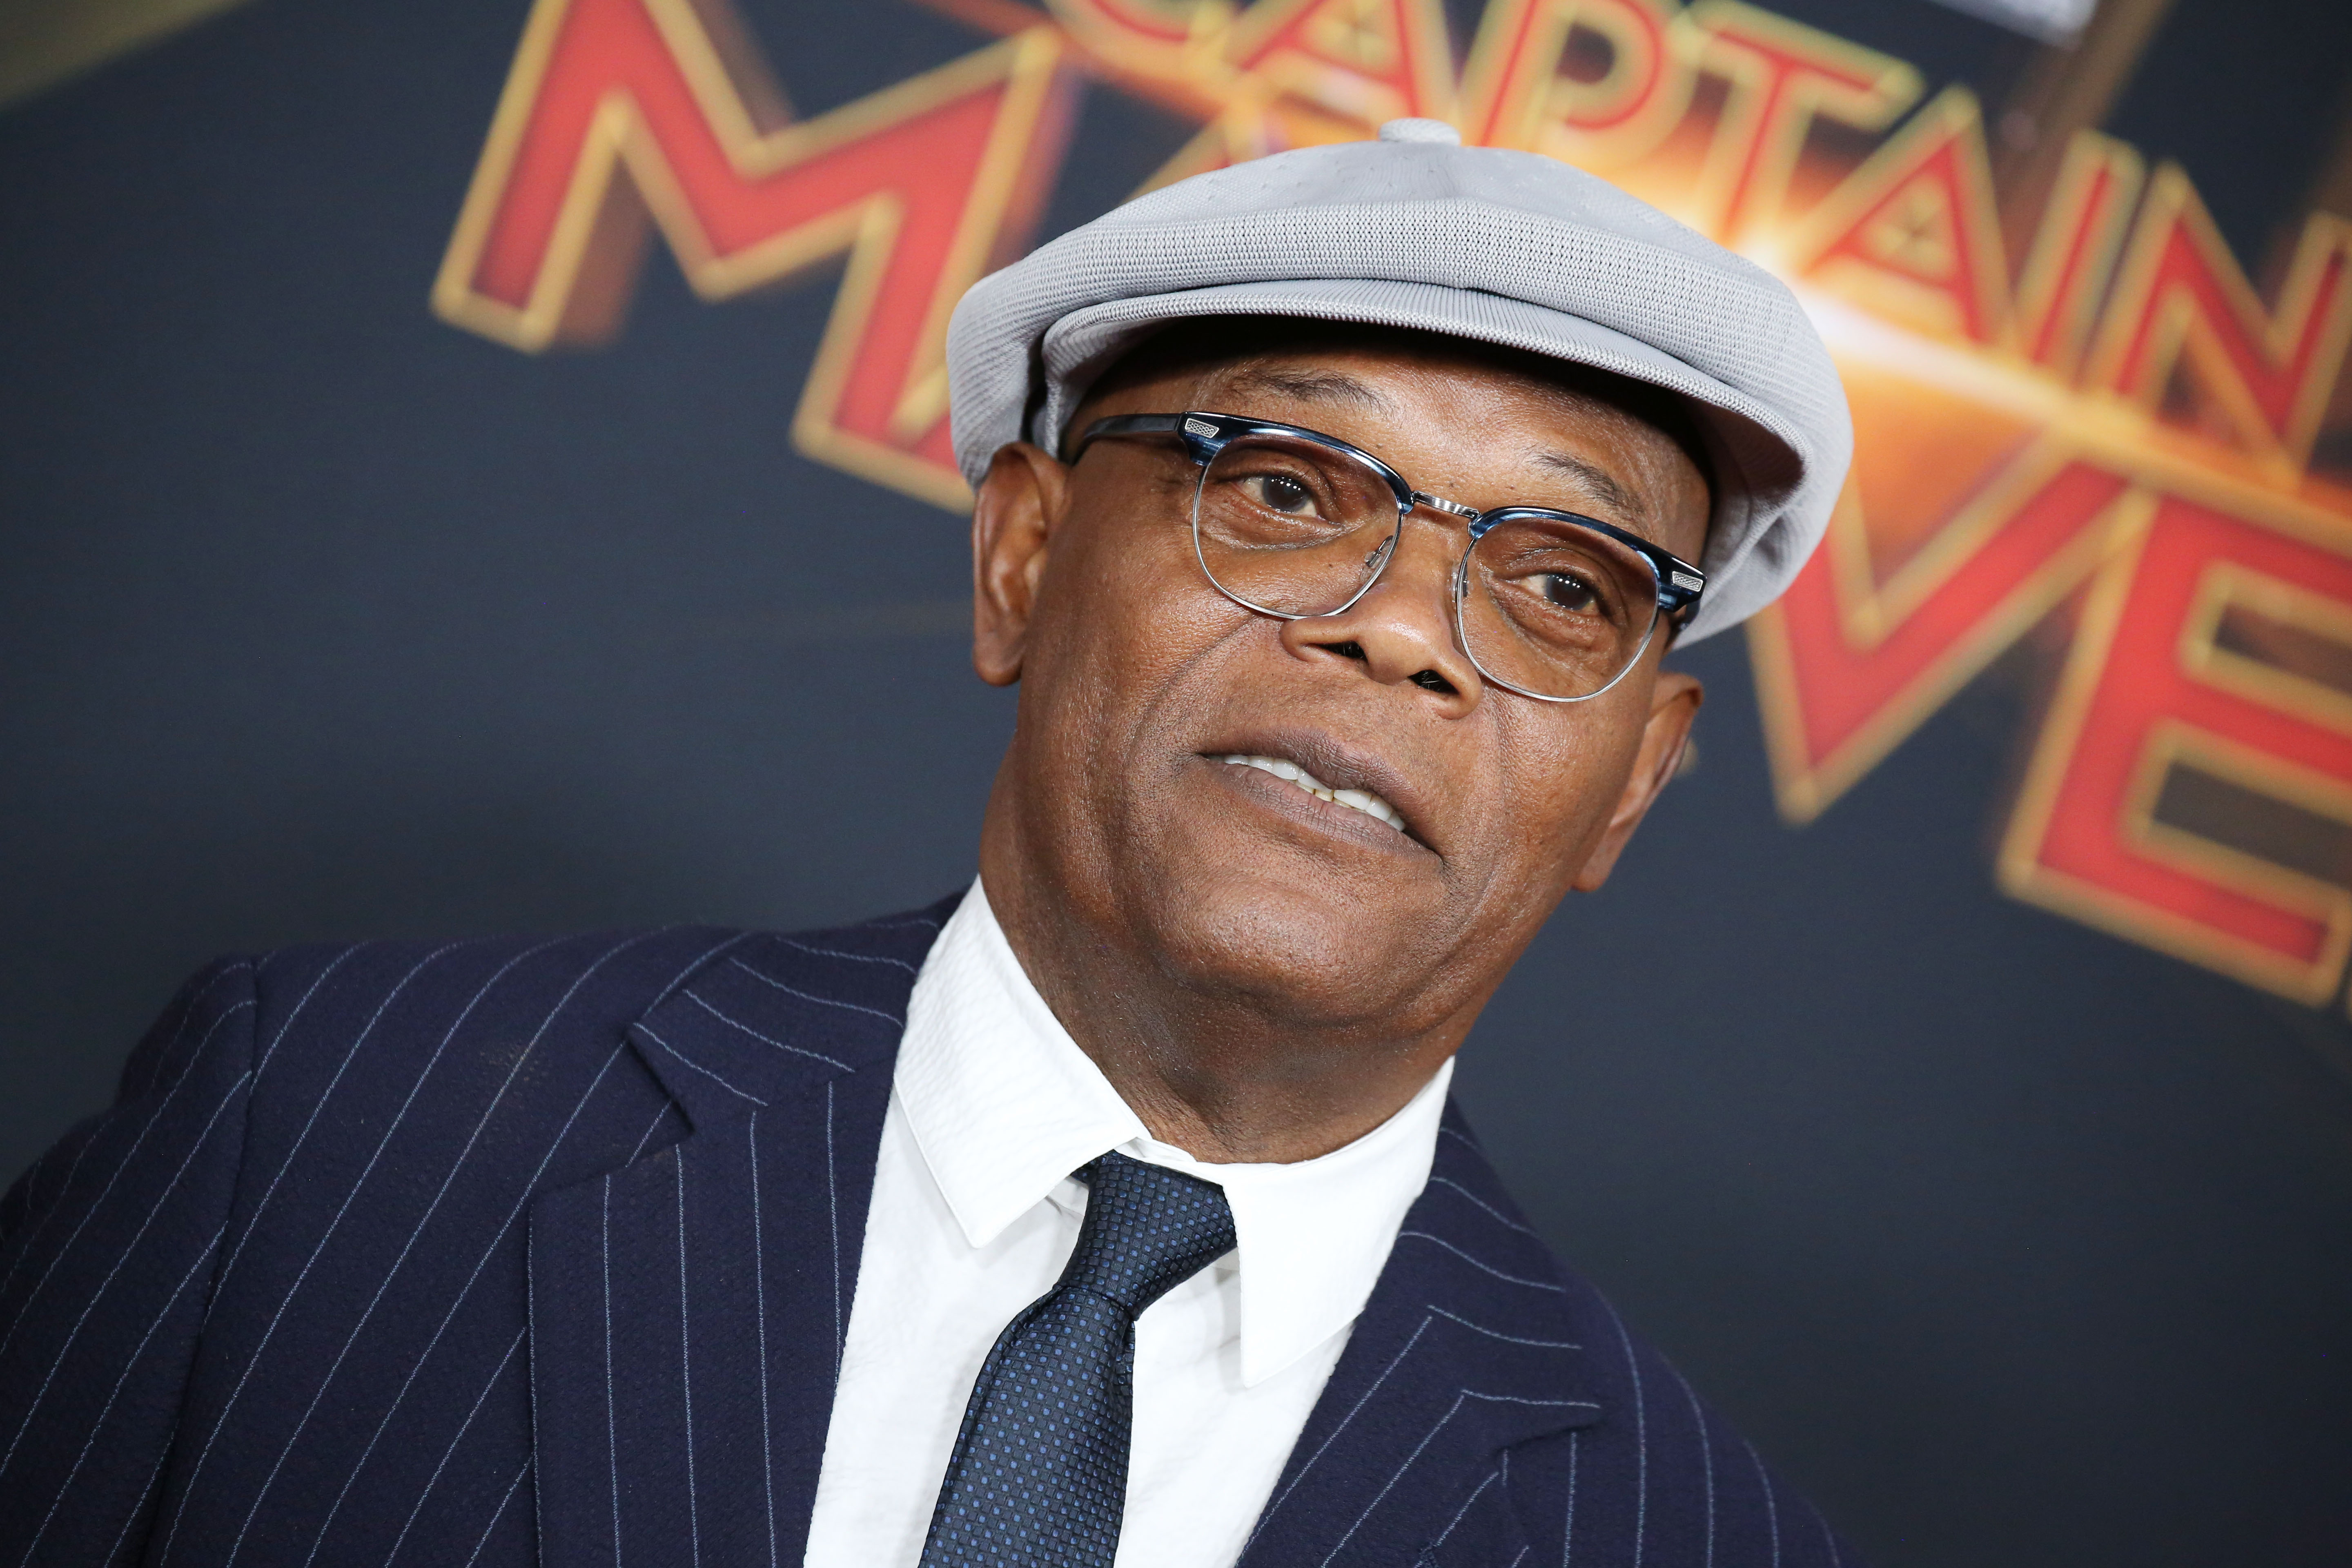 Samuel L. Jackson on Tarantino's Use of the N-Word and Only Allowing Three Takes Per Scene